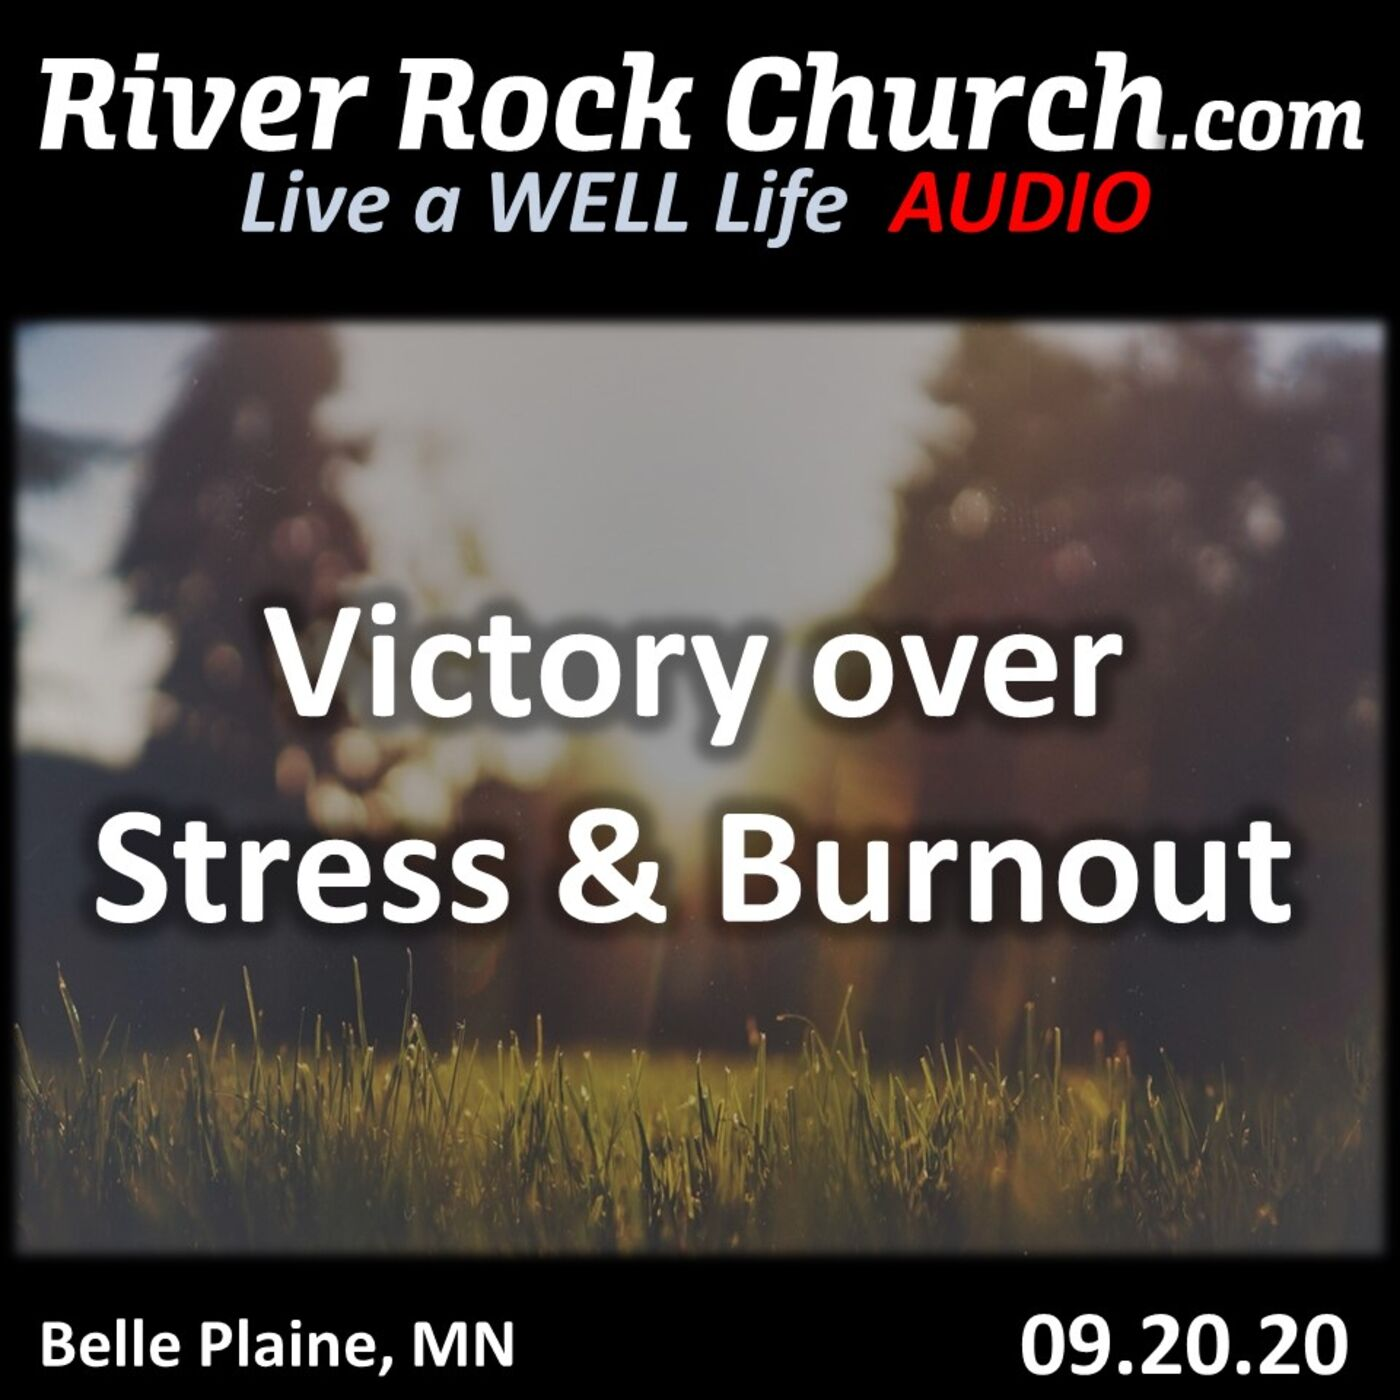 Victory over Stress and Burnout